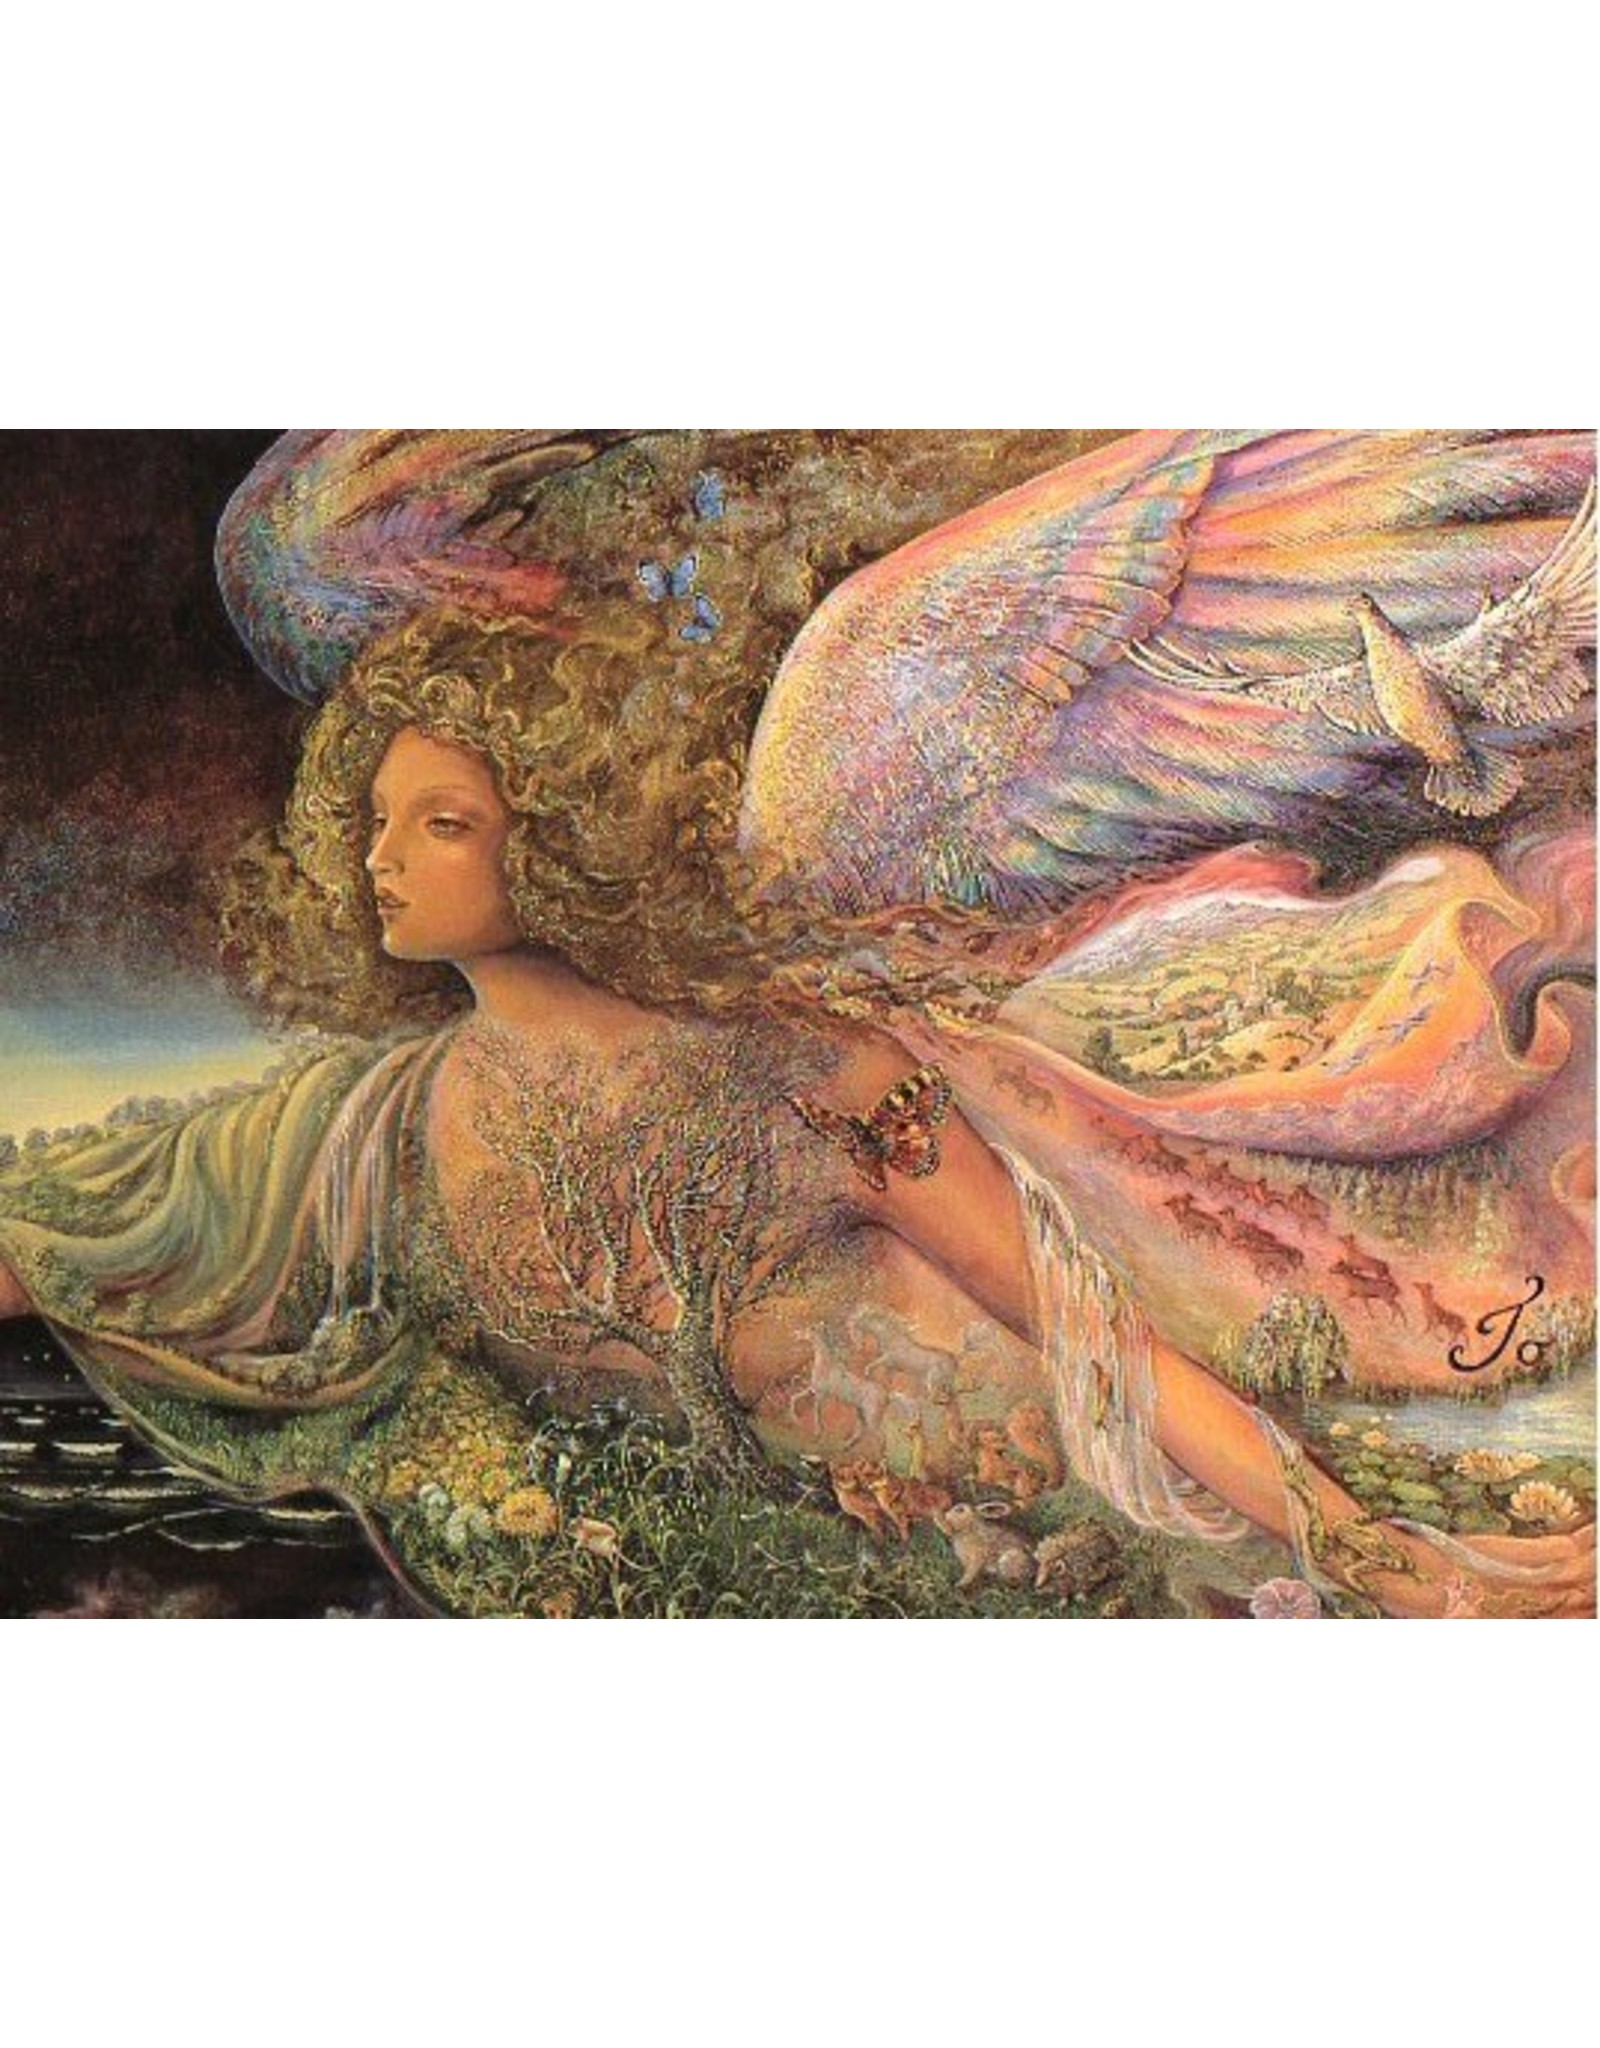 Josephine Wall Josephine Wall Natures guardian angel encouragement